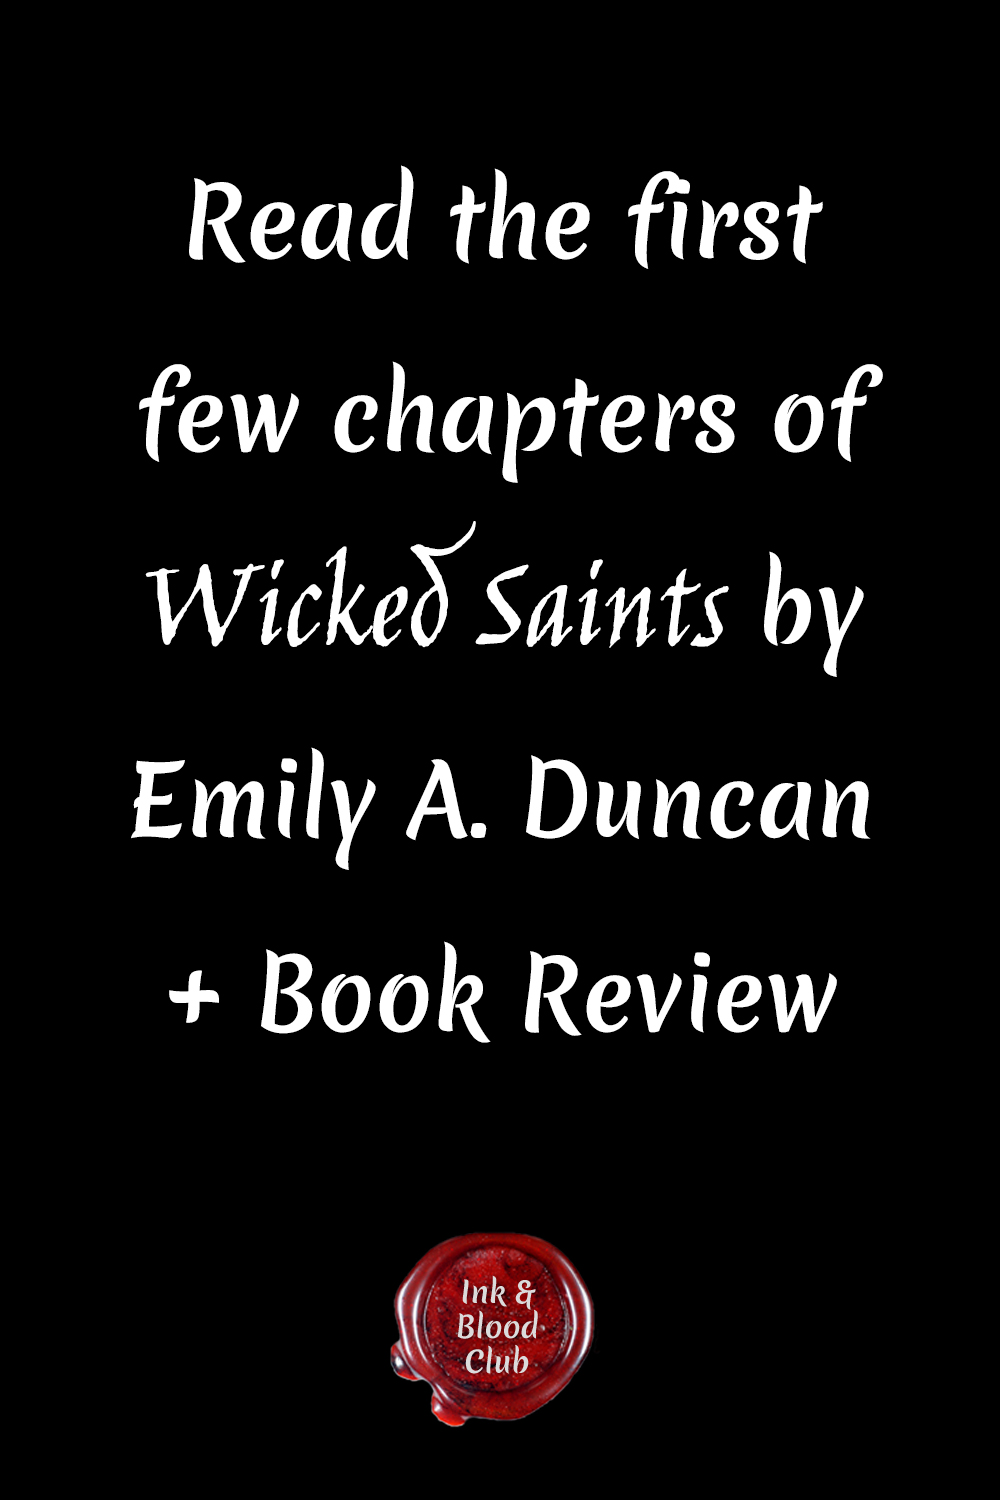 Book review for the gorgeously written Wicked Saints by Emily A. Duncan #fantasy #fiction #bookstagram Image is a black background with white letters that say Read the first few chapters of Wicked Saints by Emily A. Duncan + Book Review. At the bottom of the image is a red wax seal that says Ink & Blood Club.